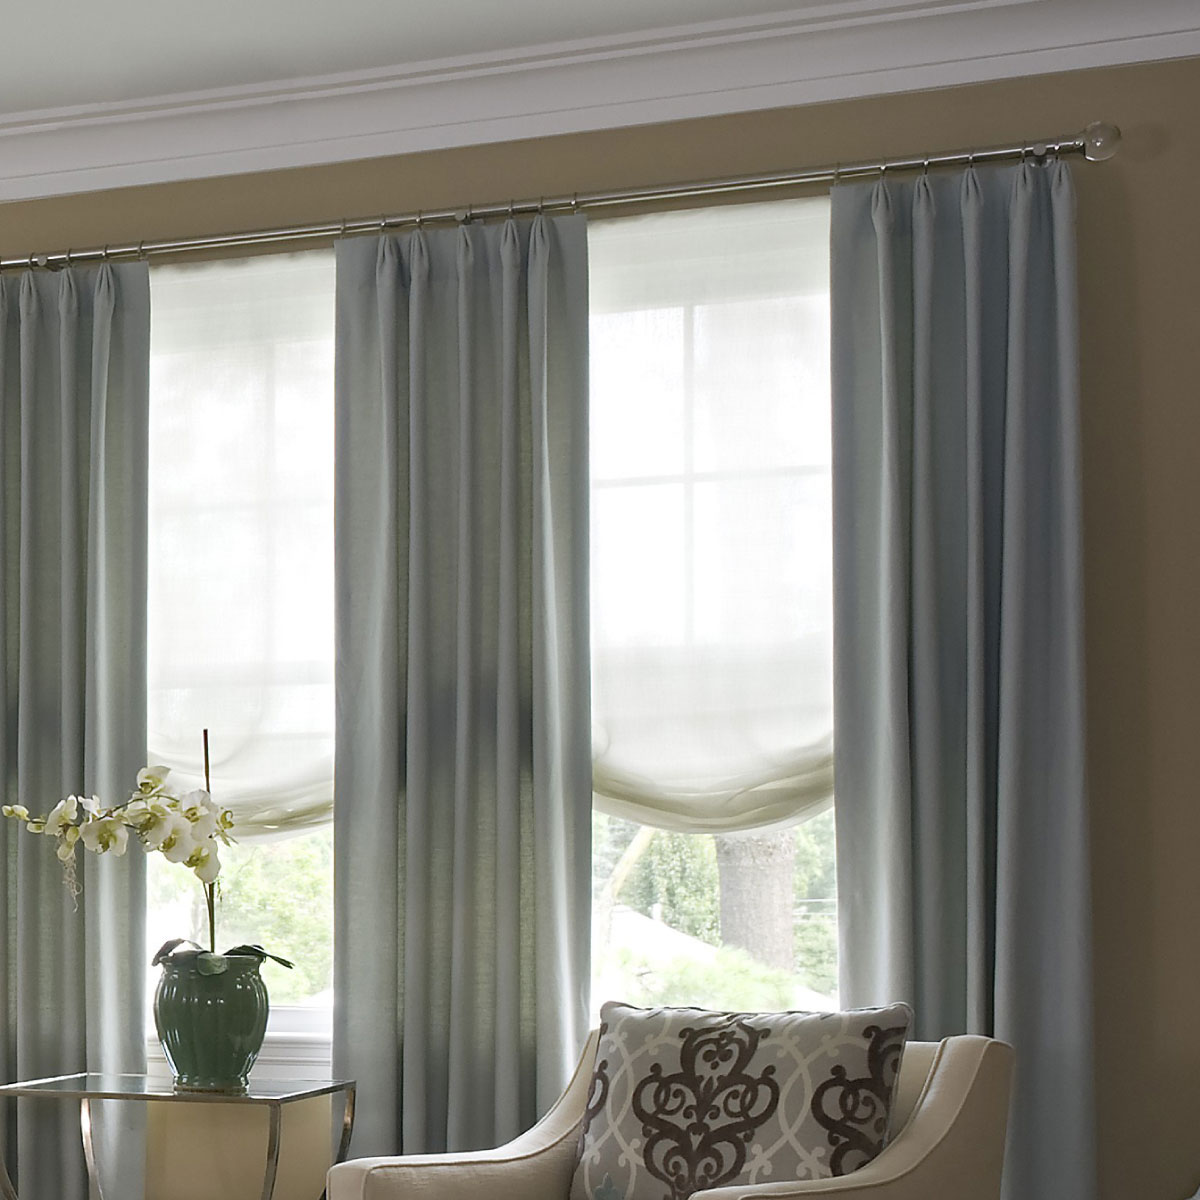 Fabric creations by ellen custom window treatments for Interior design resources